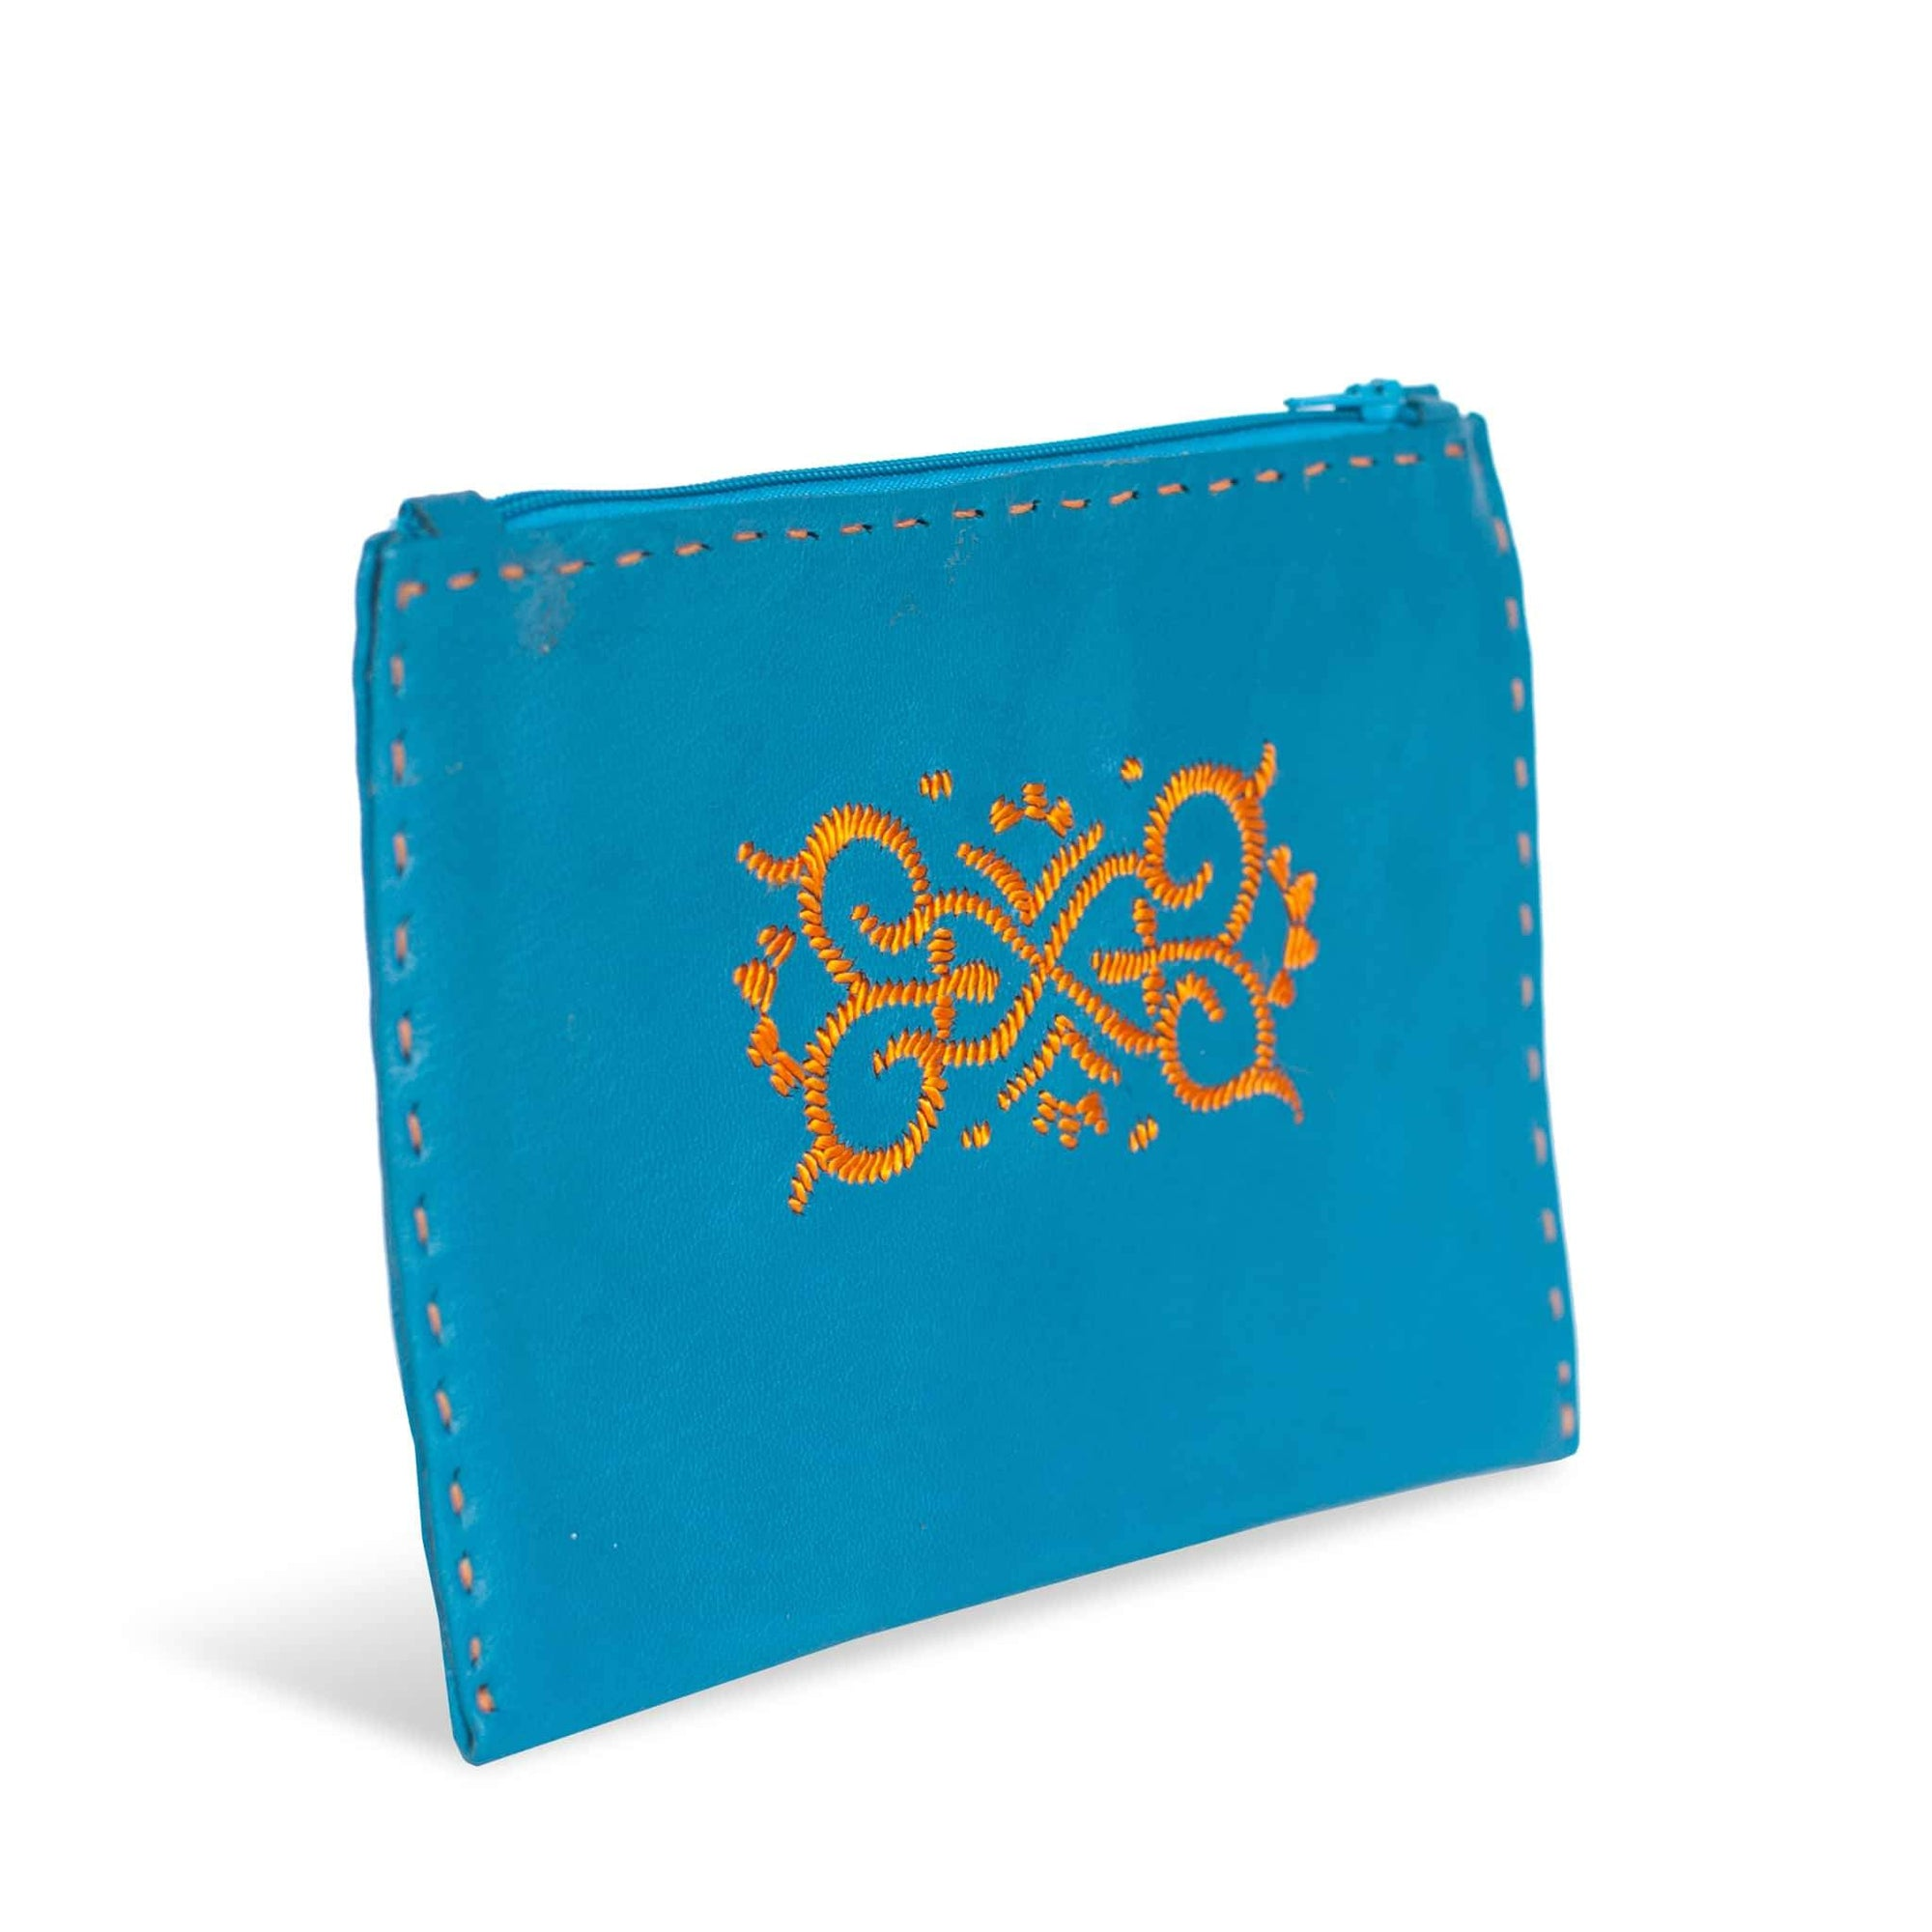 Embroidered Leather Pouch